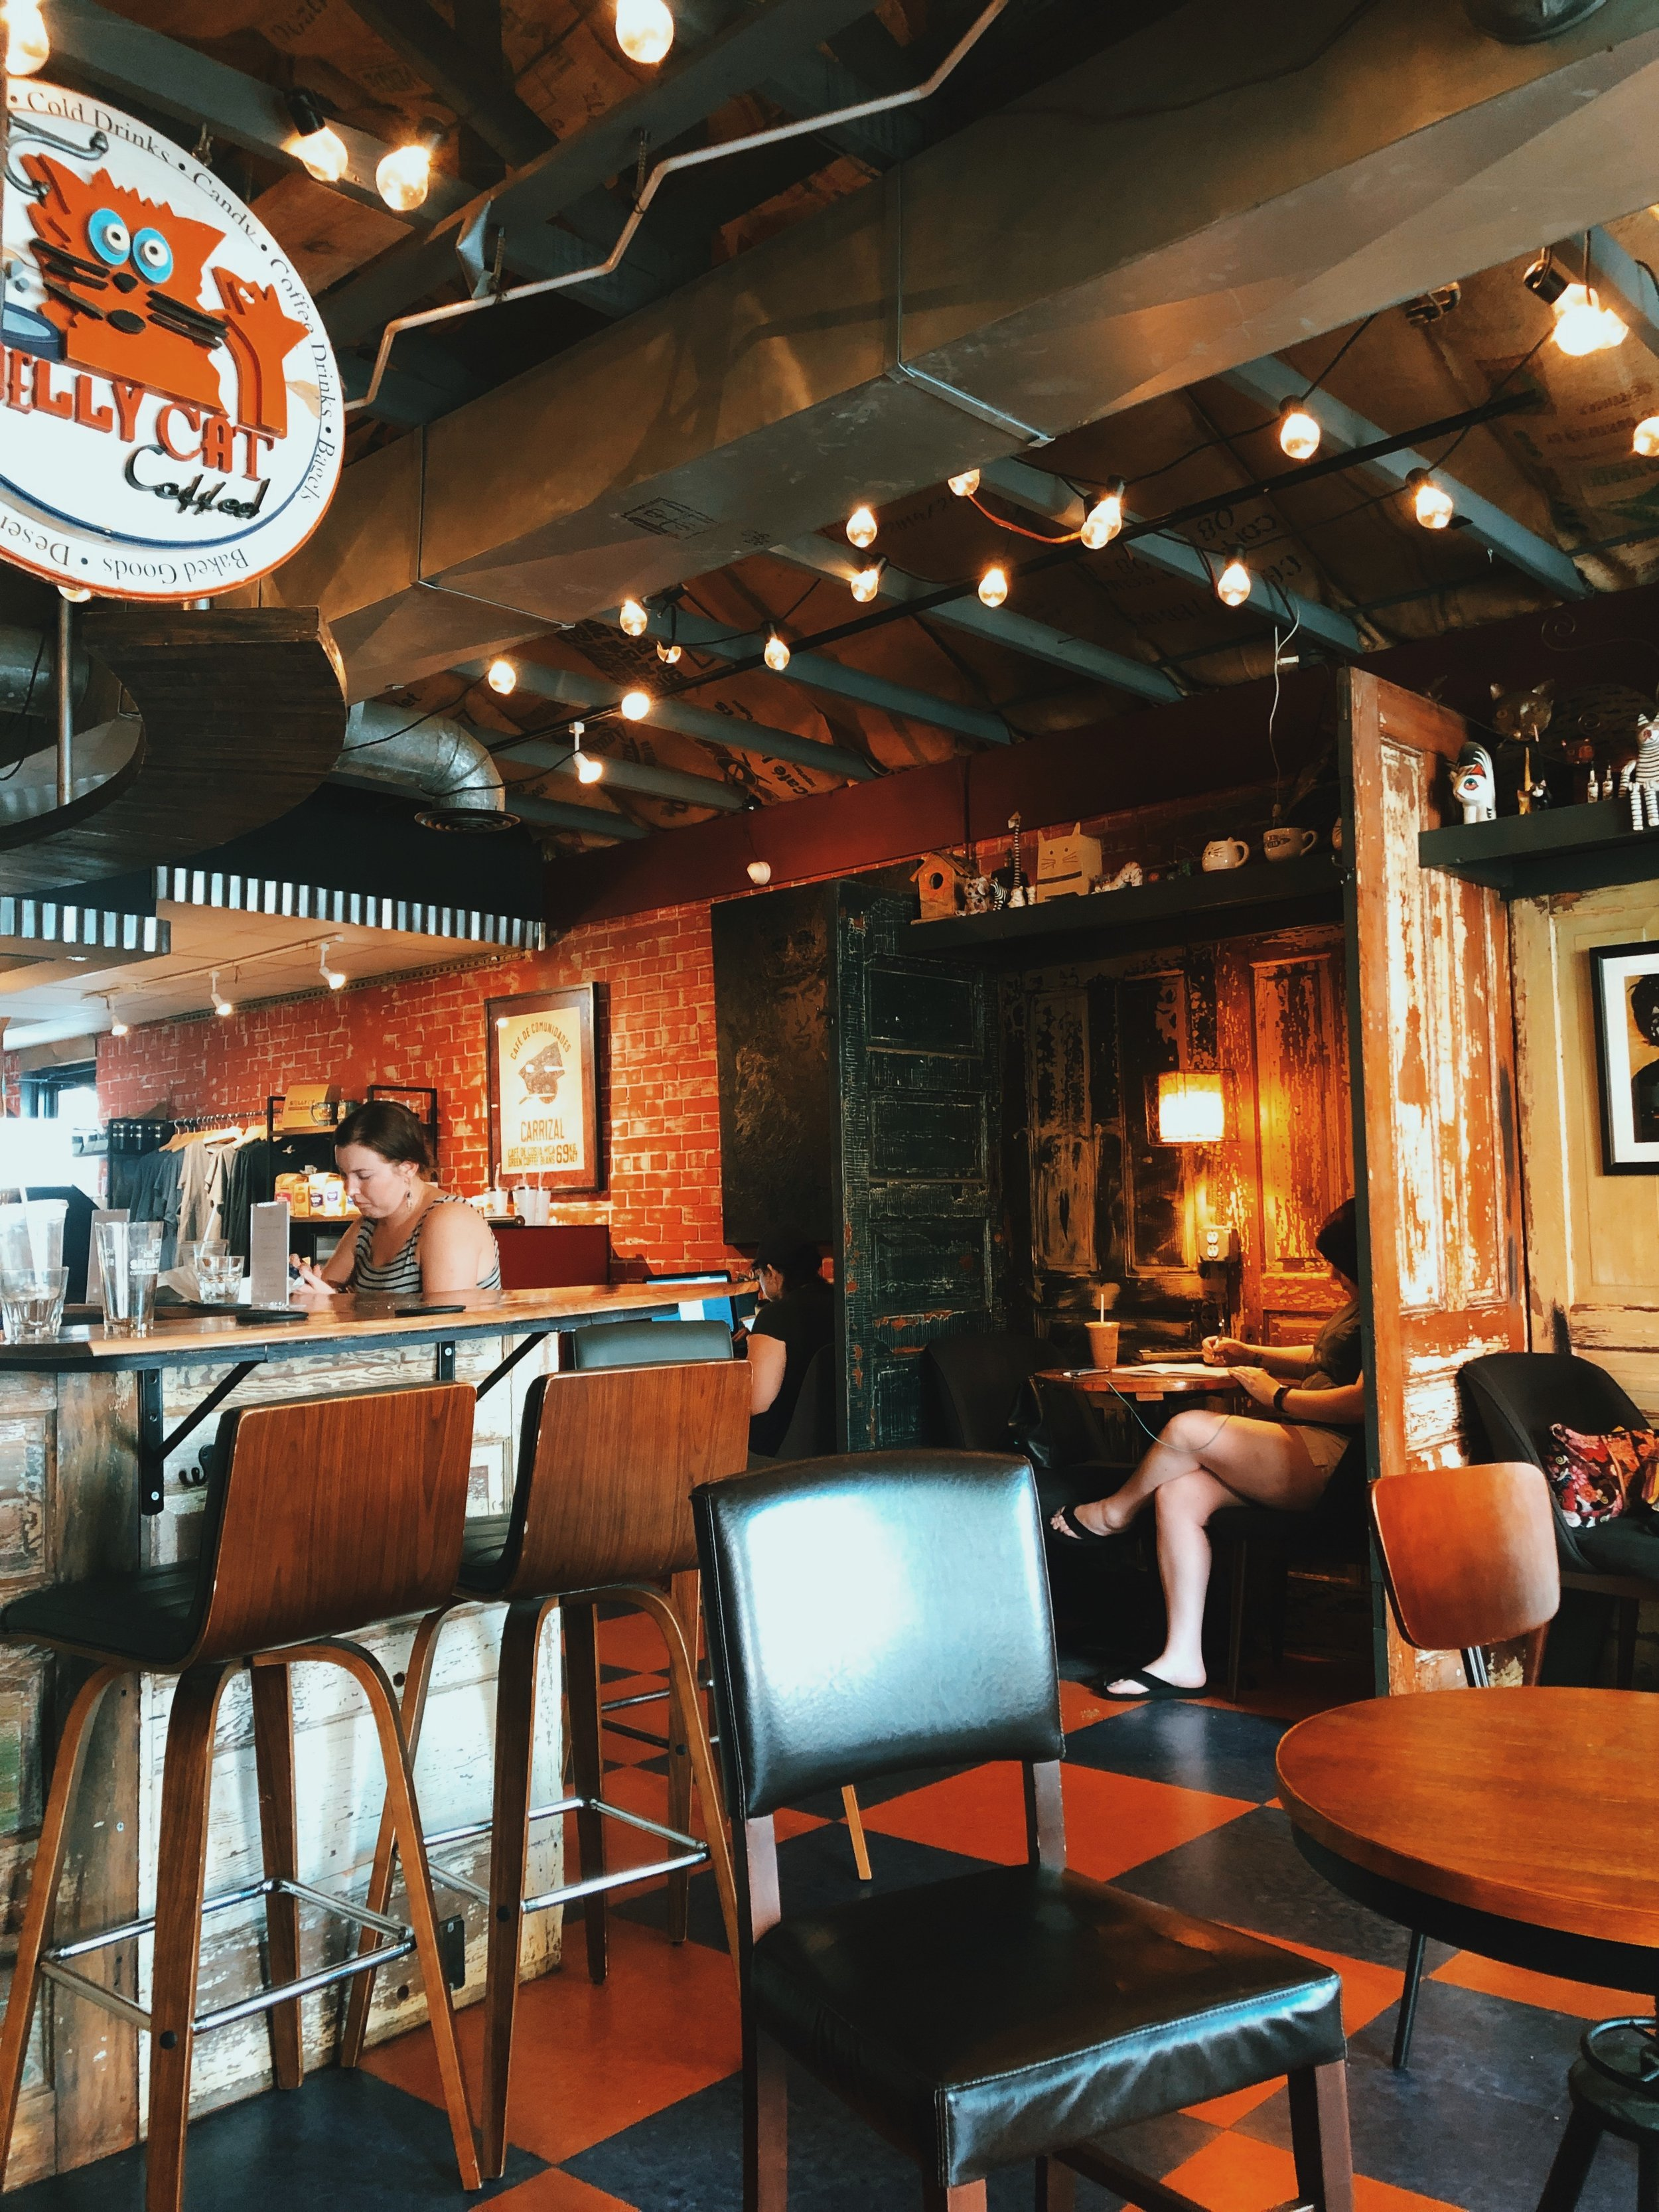 Smelly Cat cafe & coffee